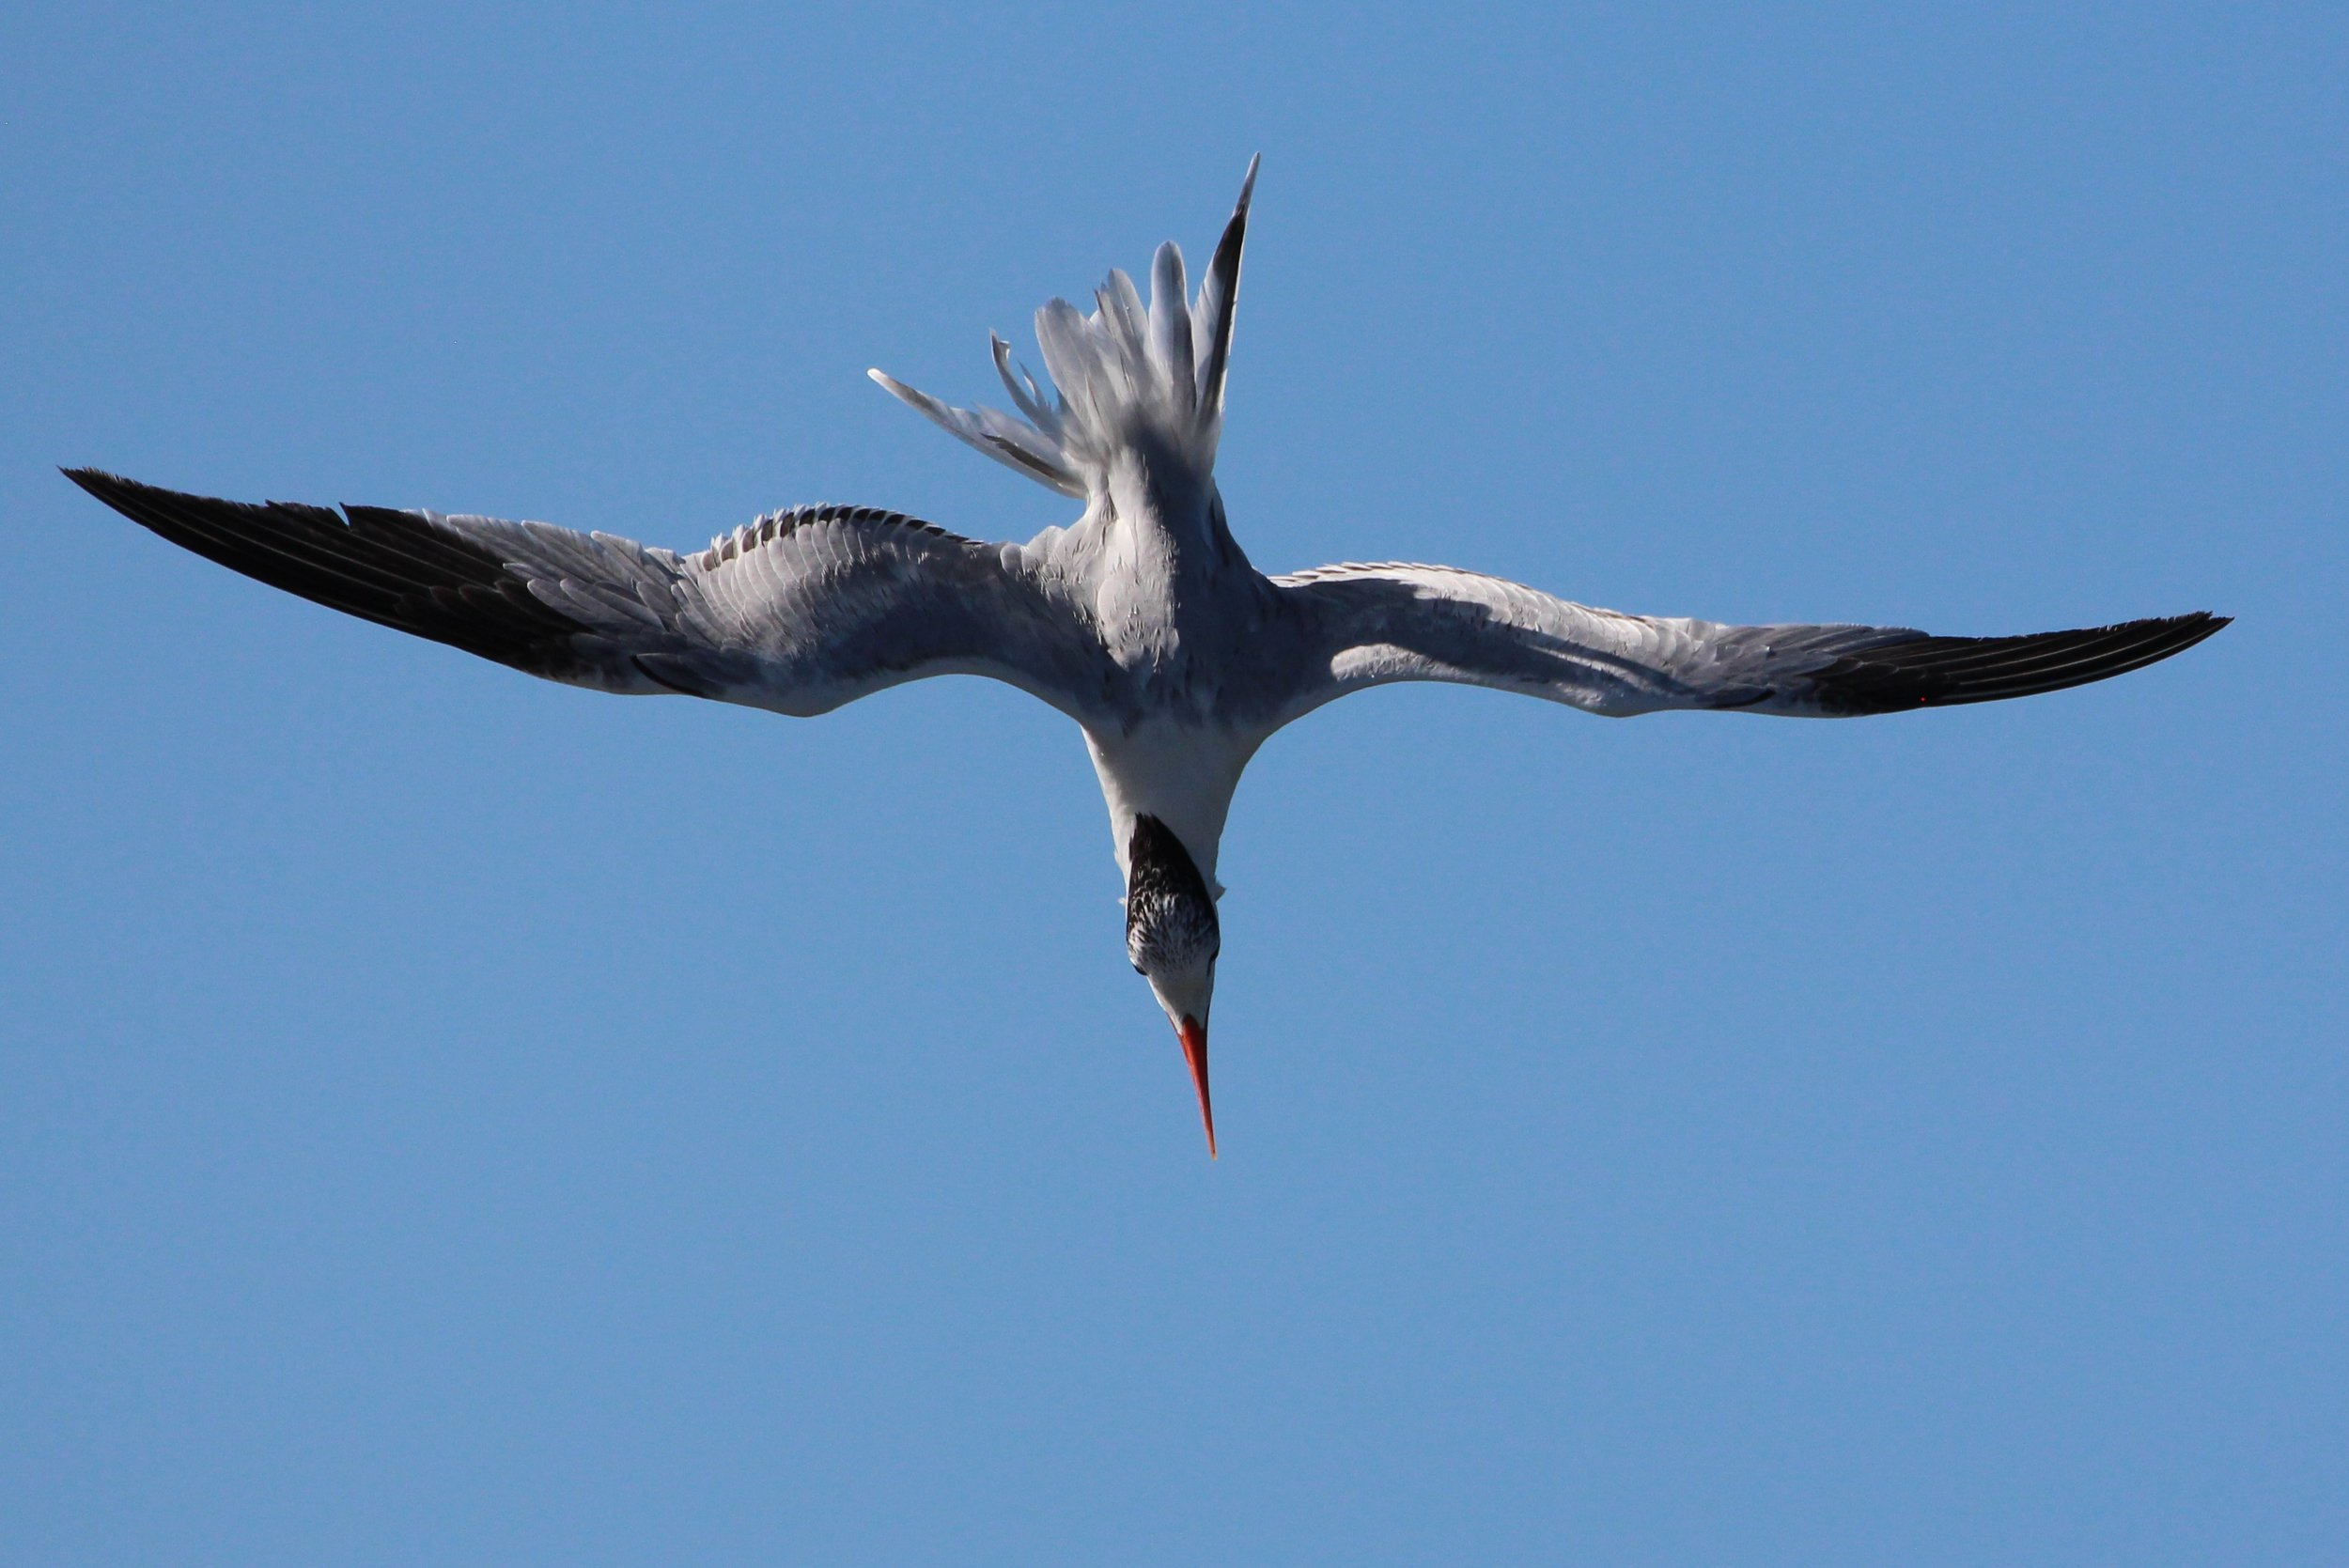 A Royal Tern on his way down for a snack.